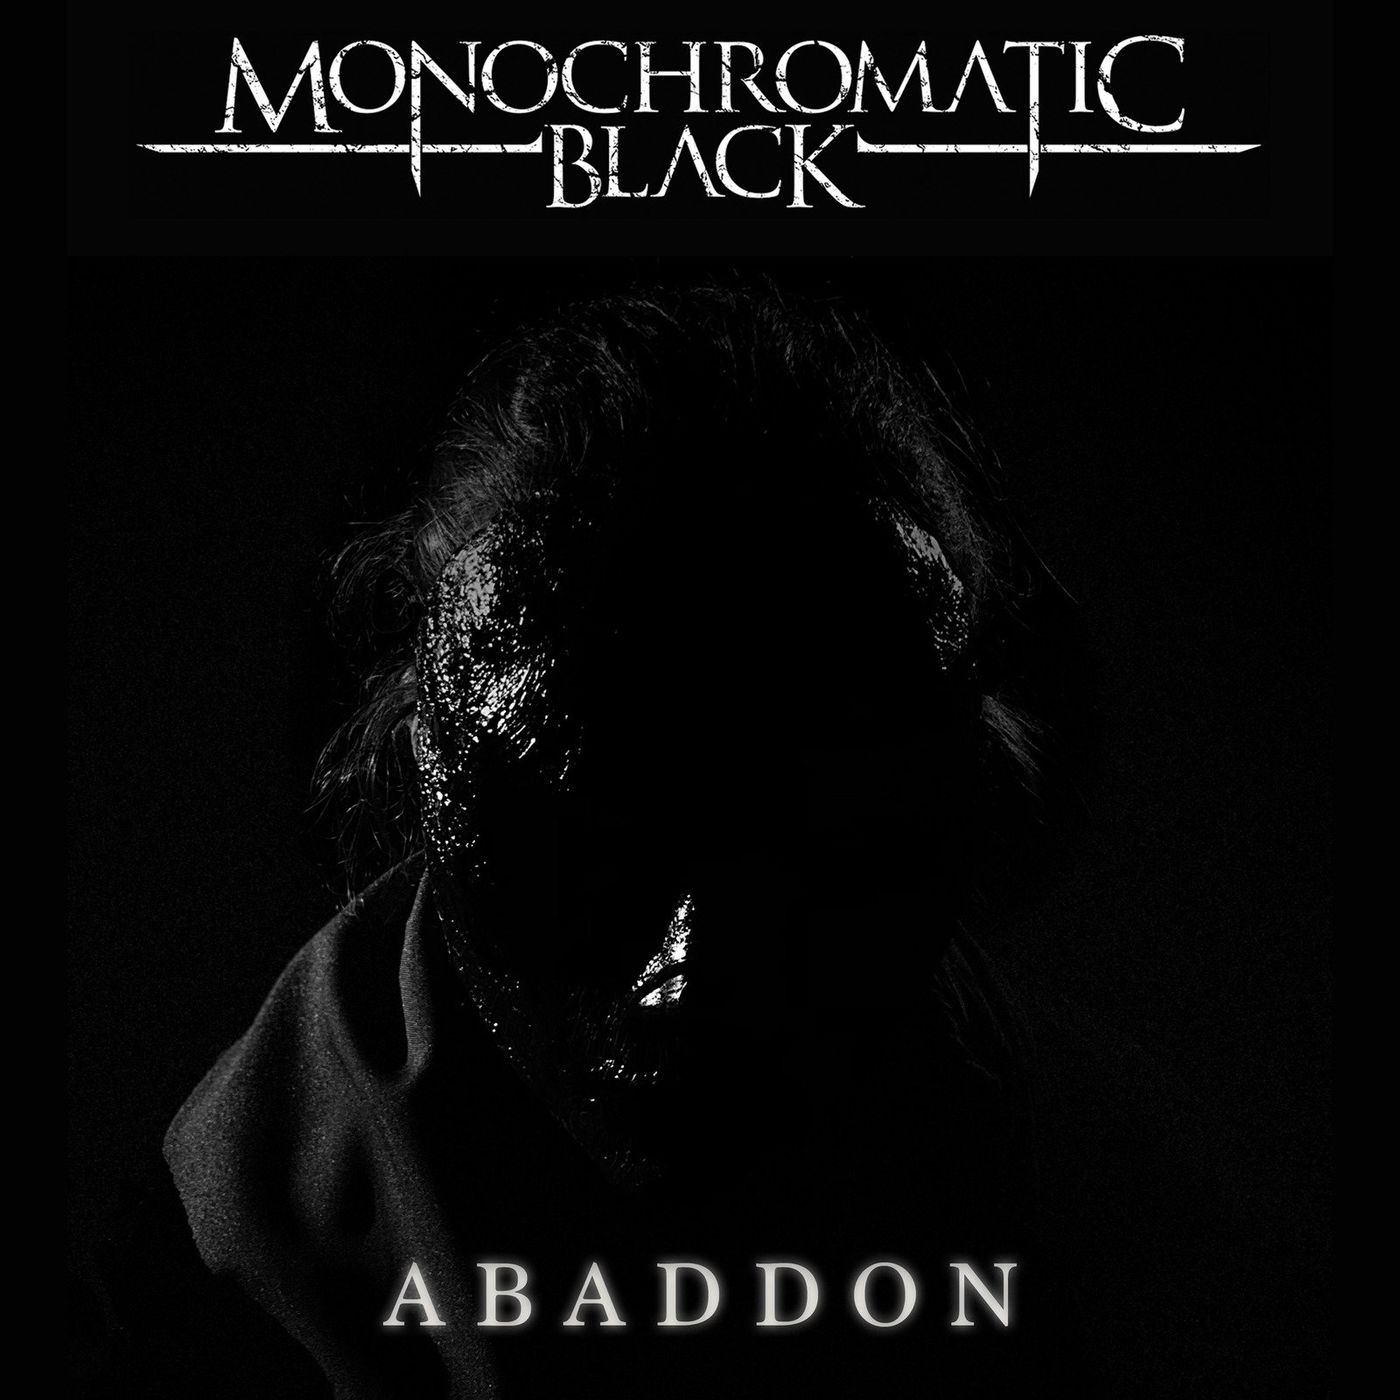 Monochromatic Black - Abaddon [single] (2020)